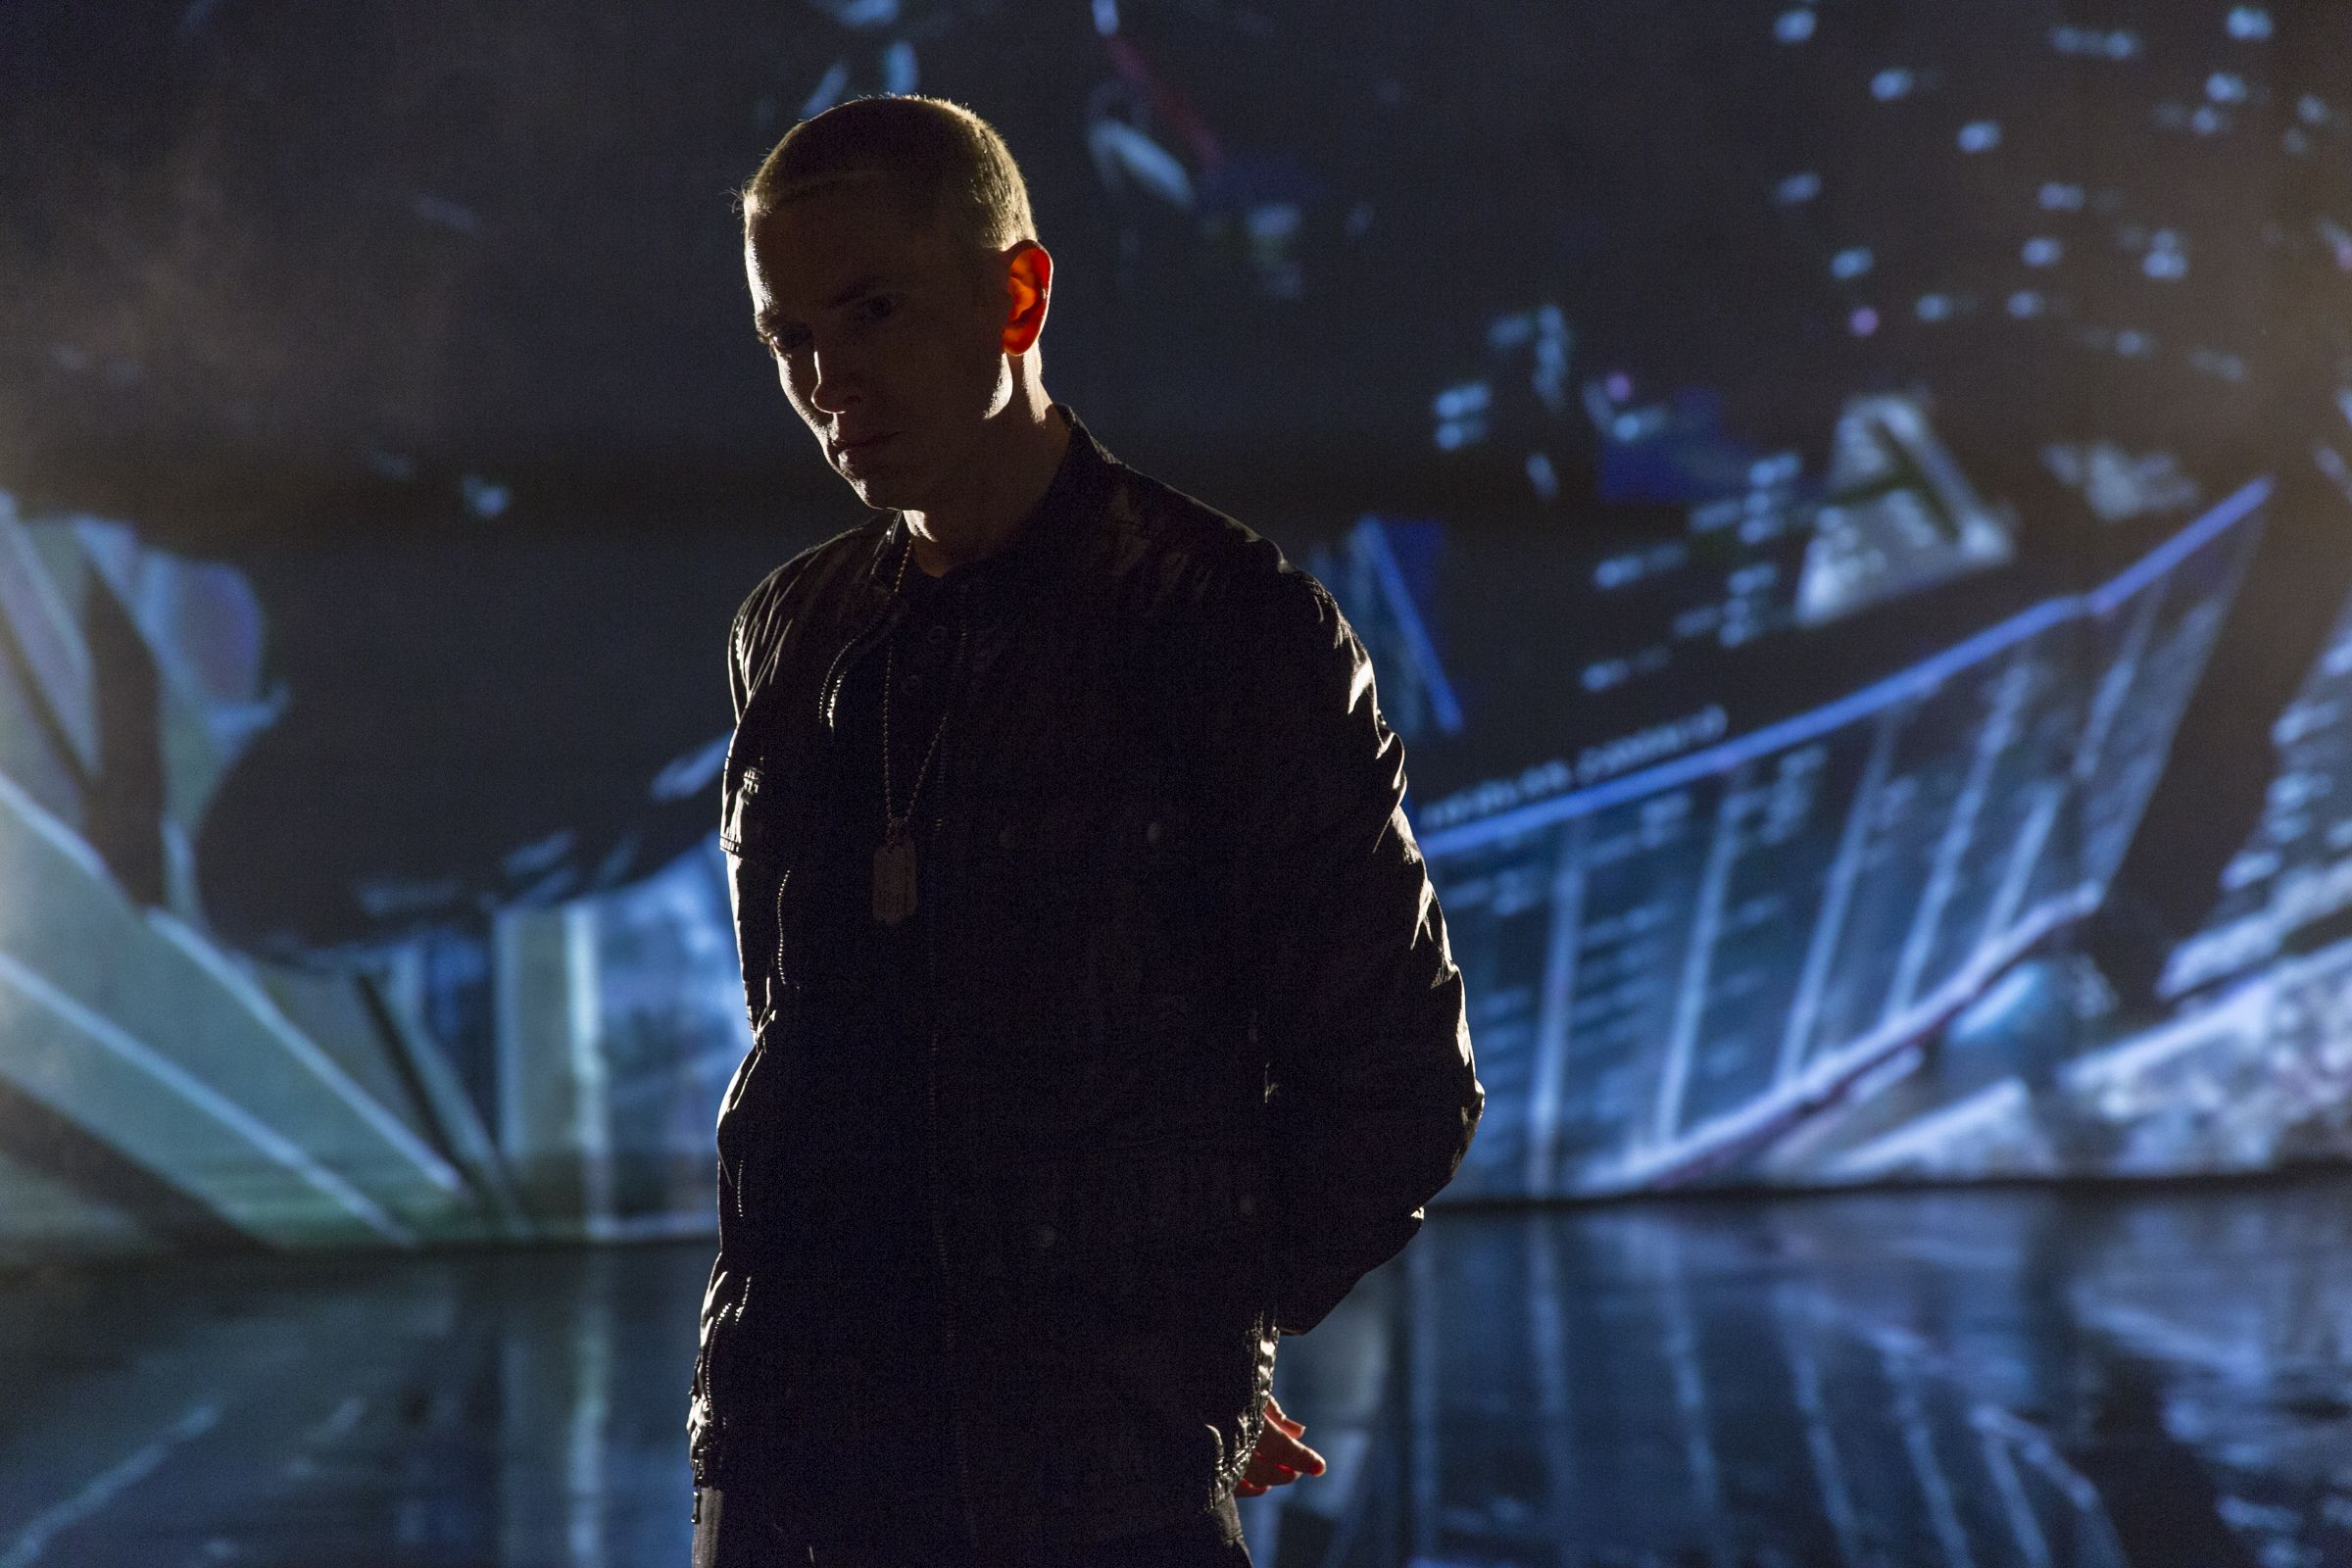 Eminem   Survival HD Wallpaper Background Image 2400x1600 ID 2400x1600